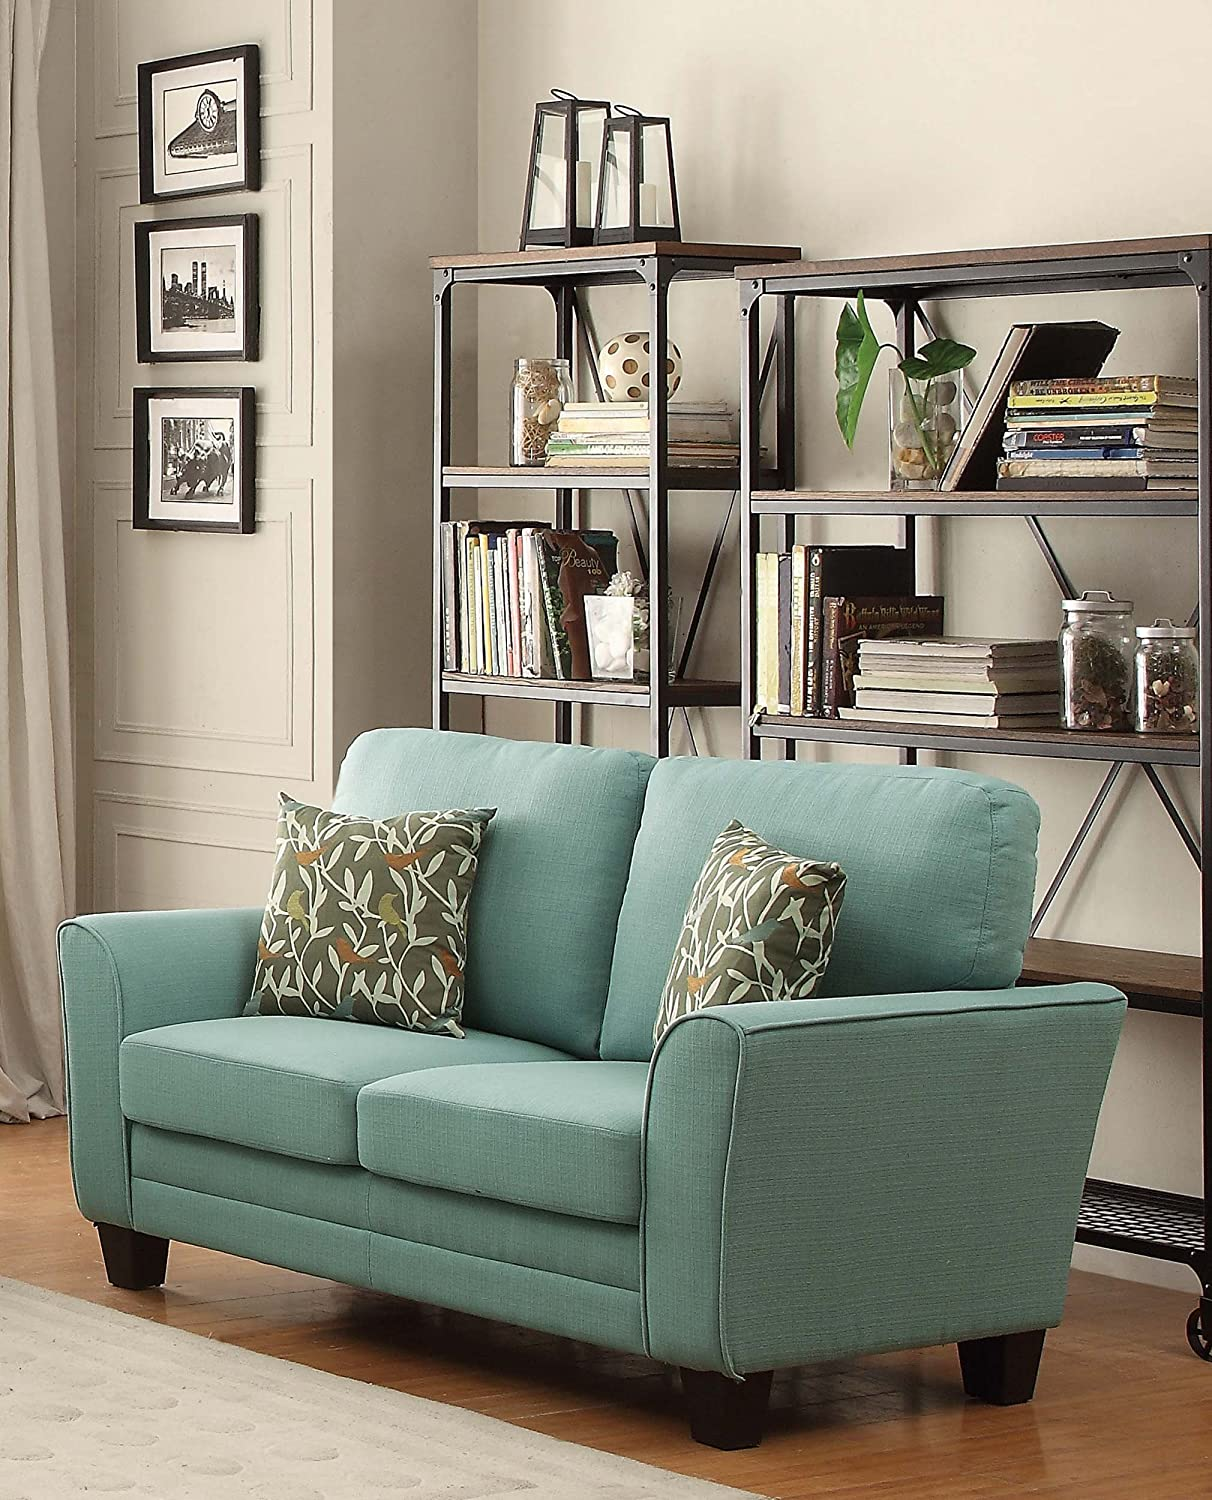 Homelegance 8413TL-2 Fully Upholstered with Piping Trim Linen Like Fabric Teal Love Seat